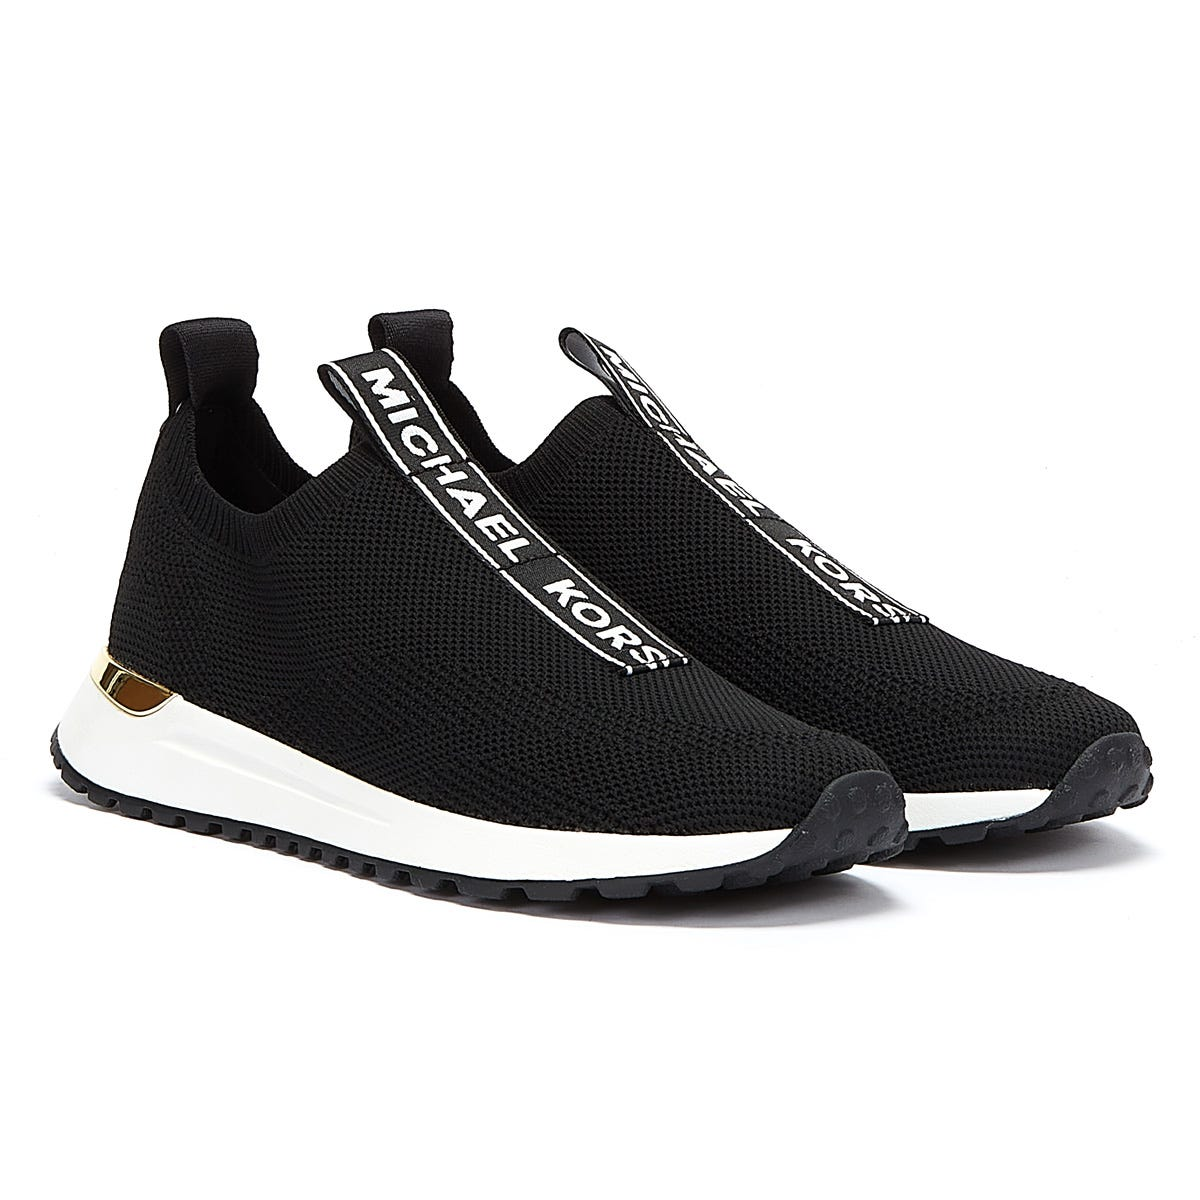 Trainers & Running Shoes Michael Kors Bodie Slip On Womens Black / White Trainers